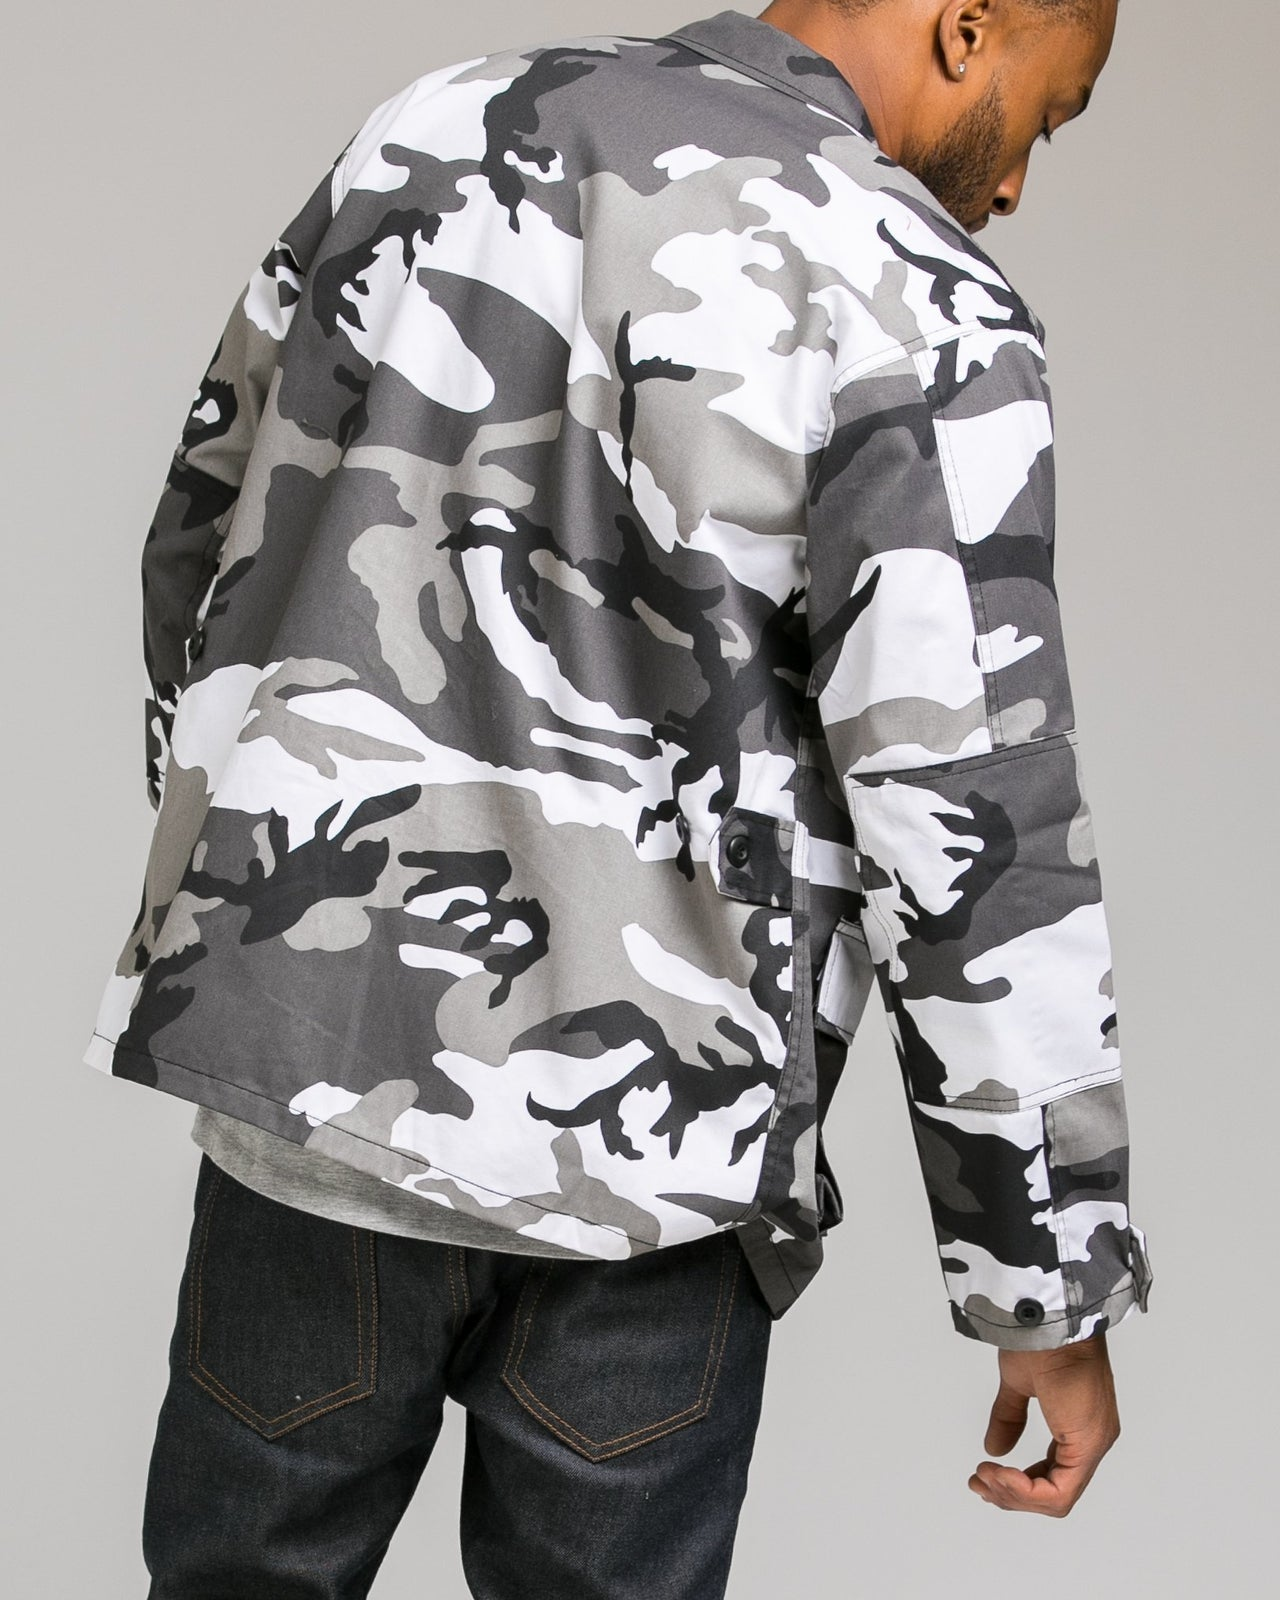 B.D.U. Shirt Jacket - Color: City Camo | White